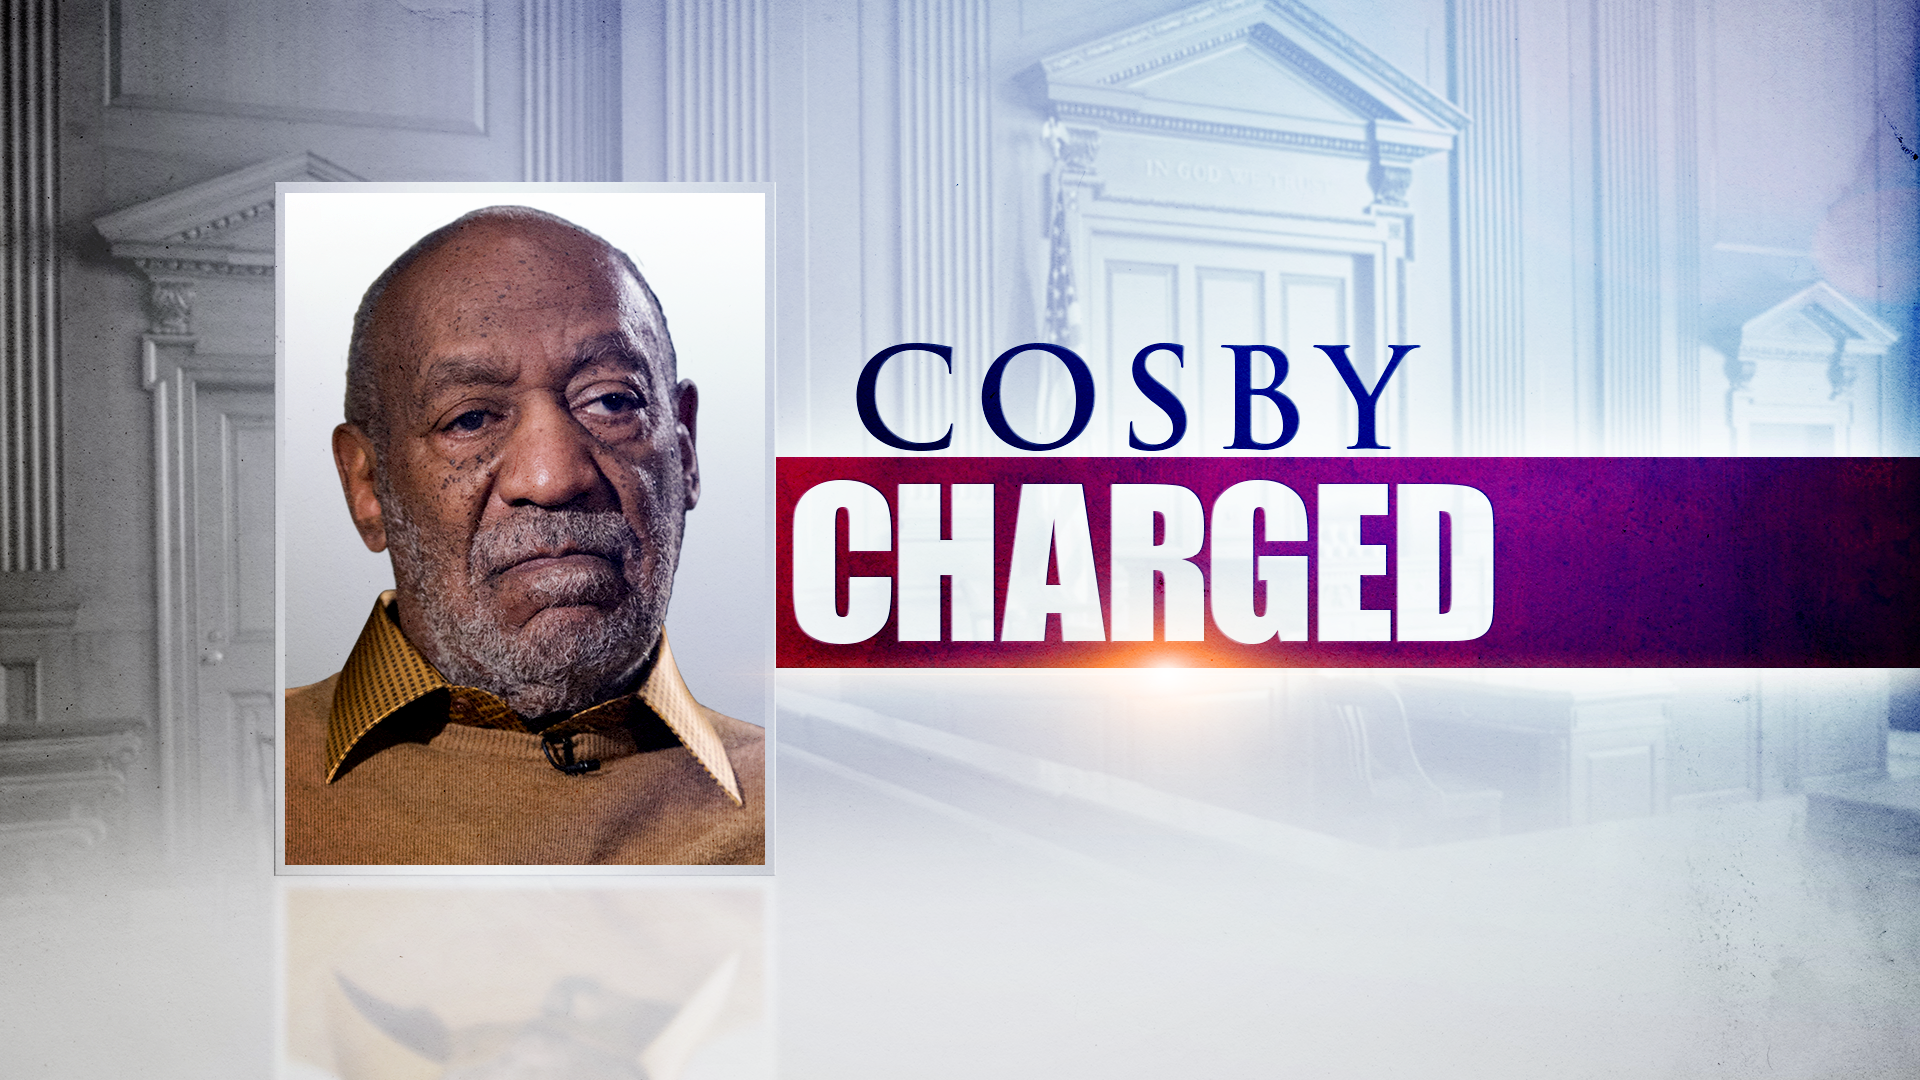 Cosby Charged_118227